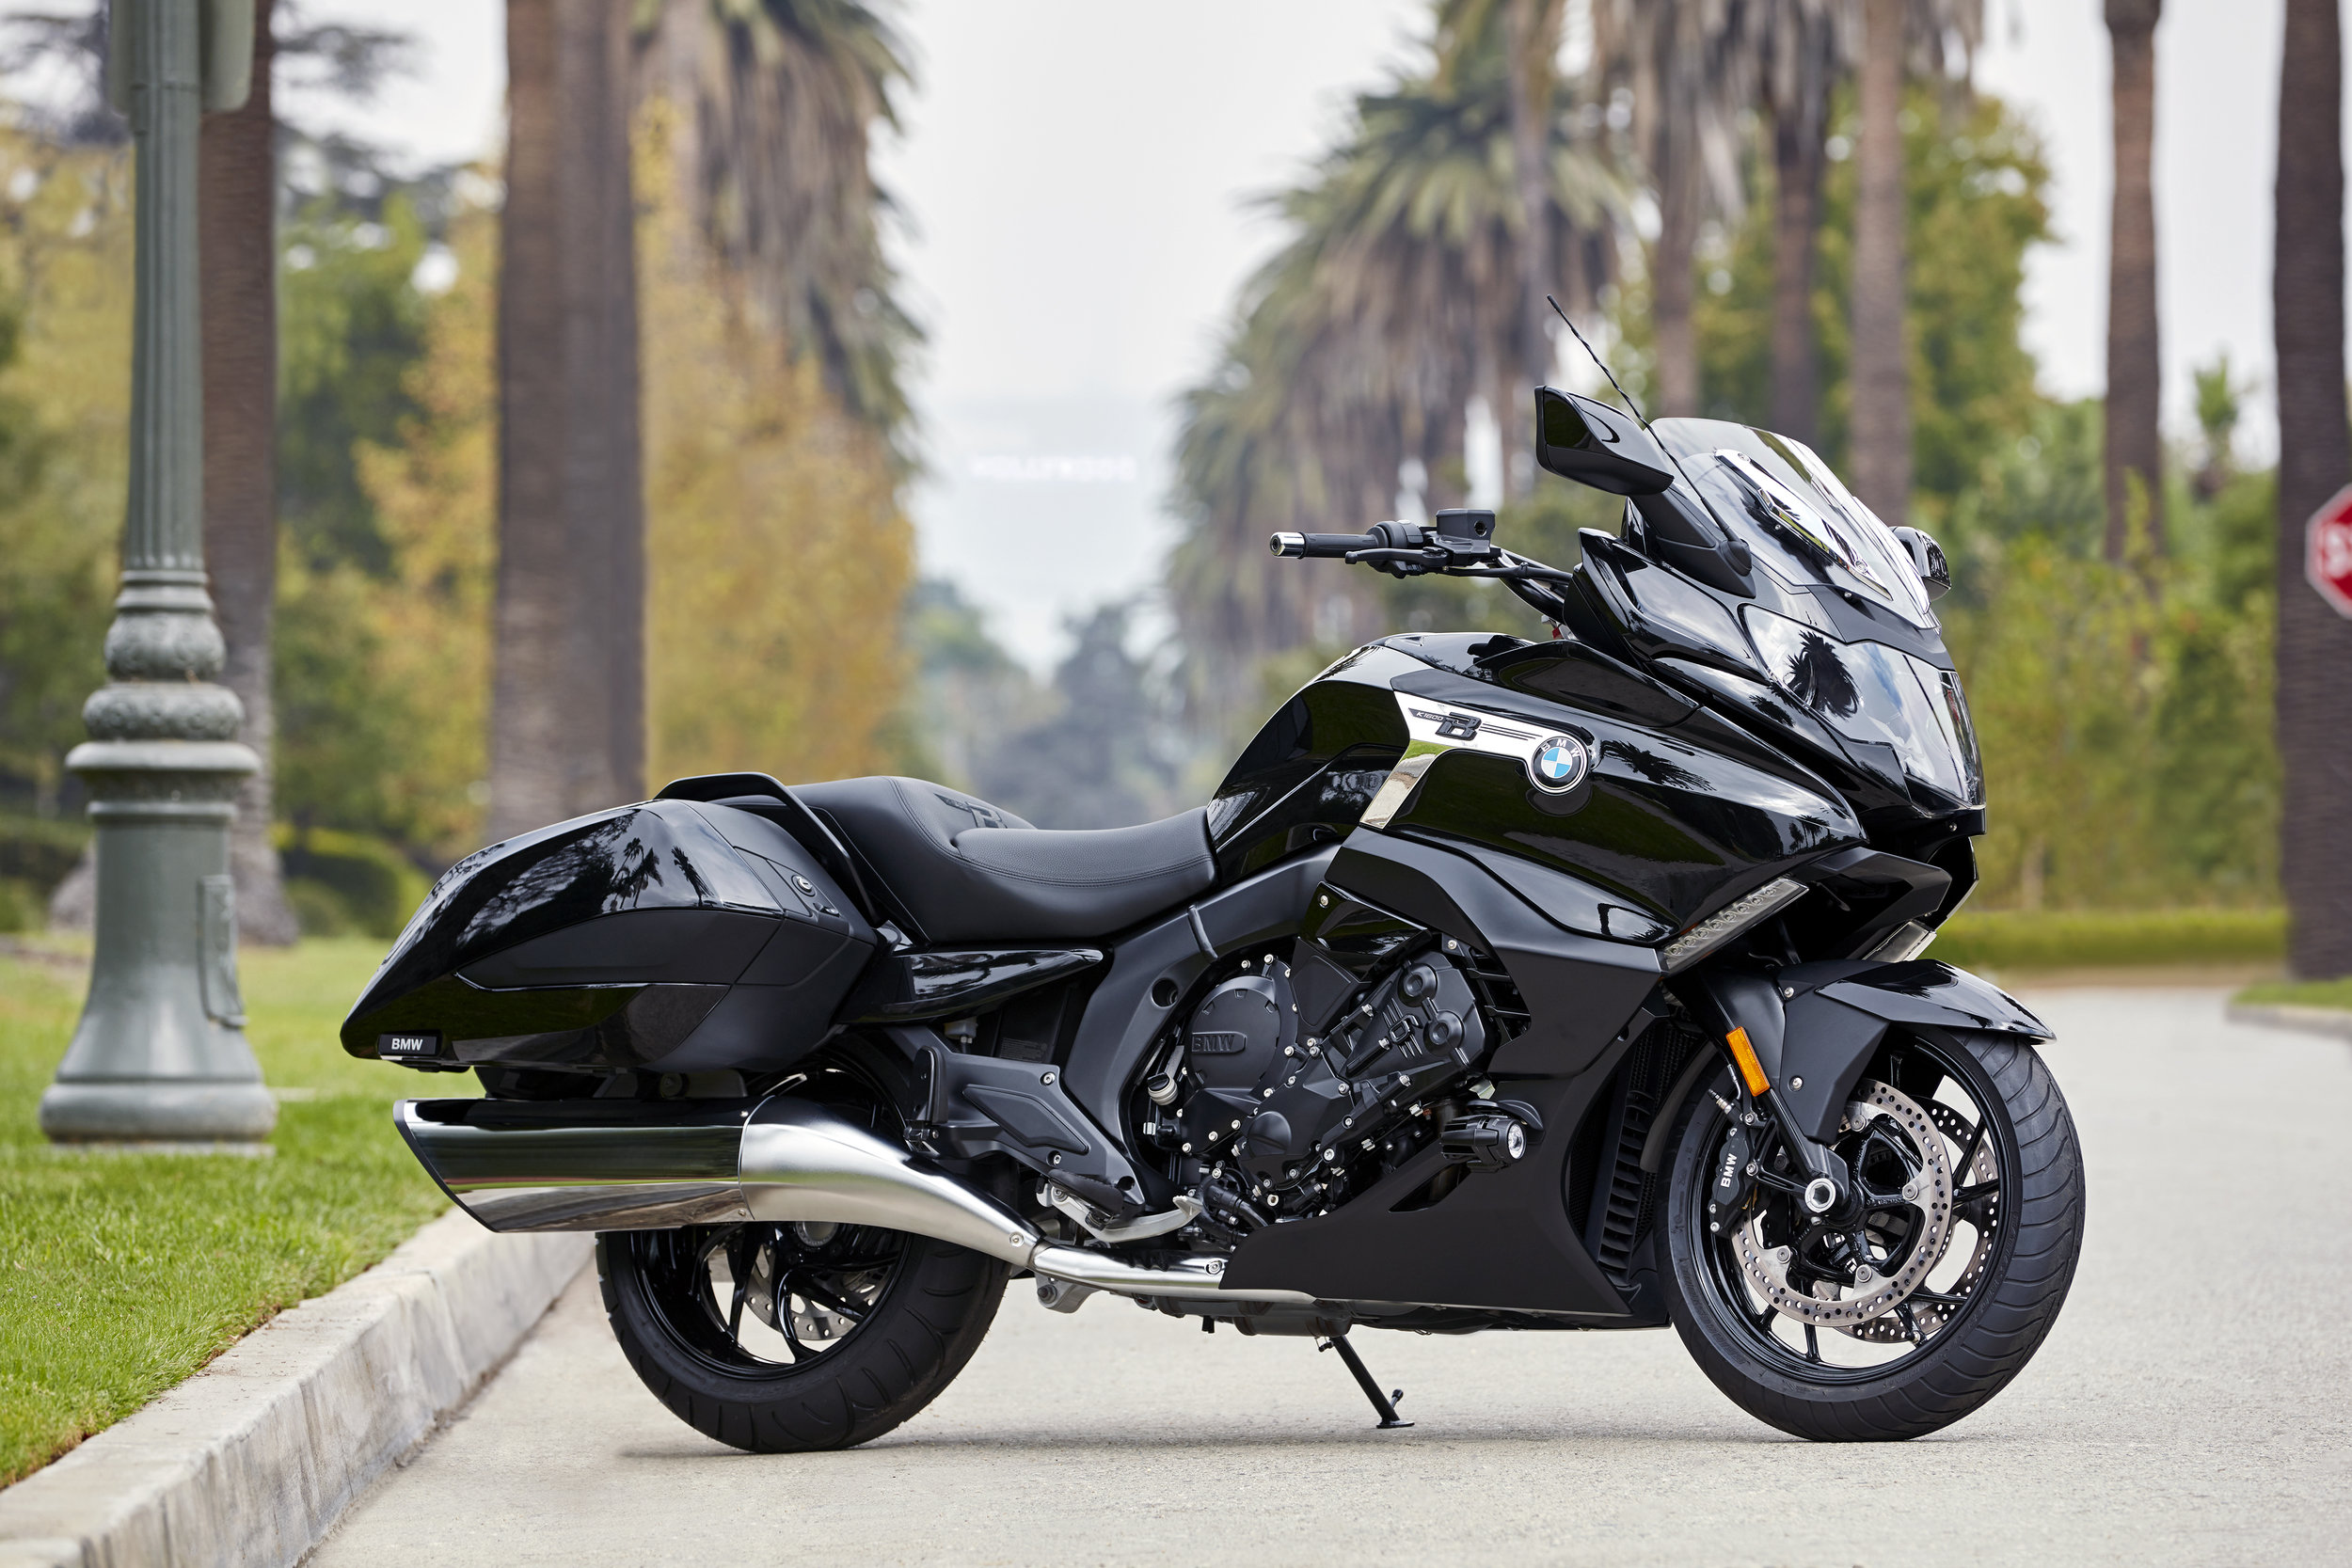 Bmw K 1600 B Unveiled To U S Riders At Progressive International Motorcycle Show In Cleveland Sierra Bmw Motorcycle